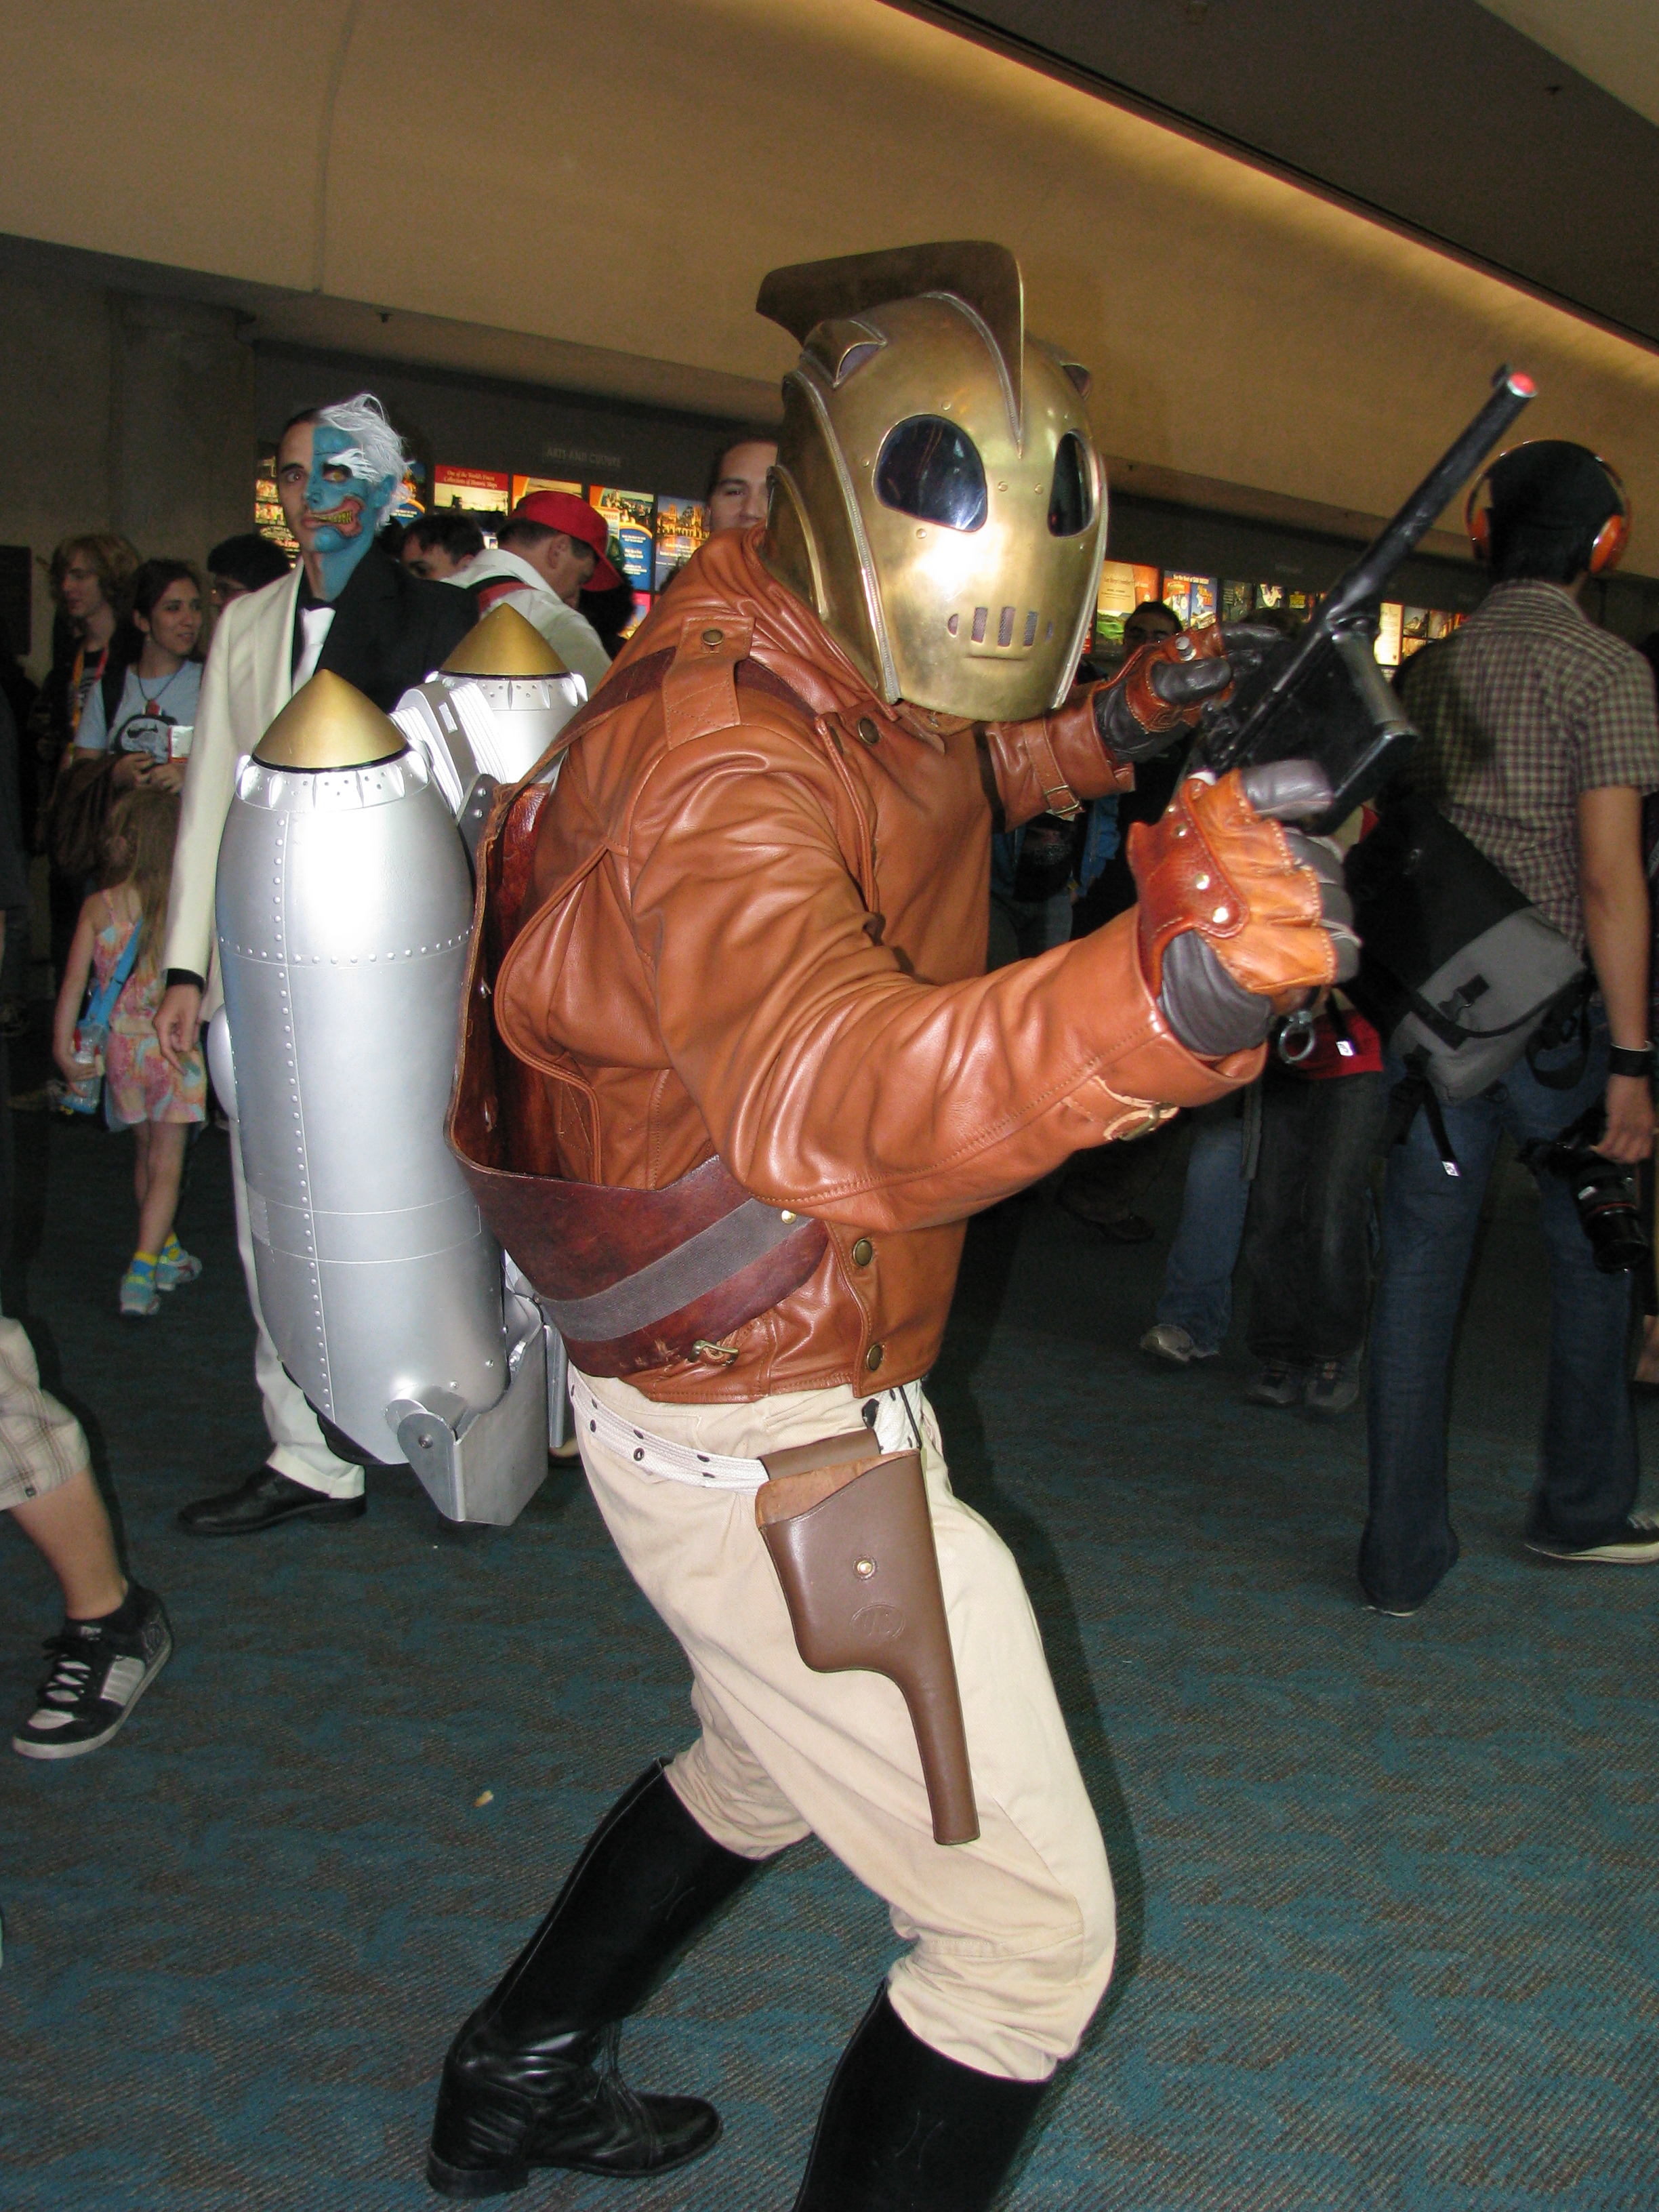 San Diego Comic-Con 2012 - The Rocketeer (7585144732).jpg A cosplay of The Rocketeer Cosplay at San Diego Comic Con 2012. Date 12 July 2012, 17:05 Source